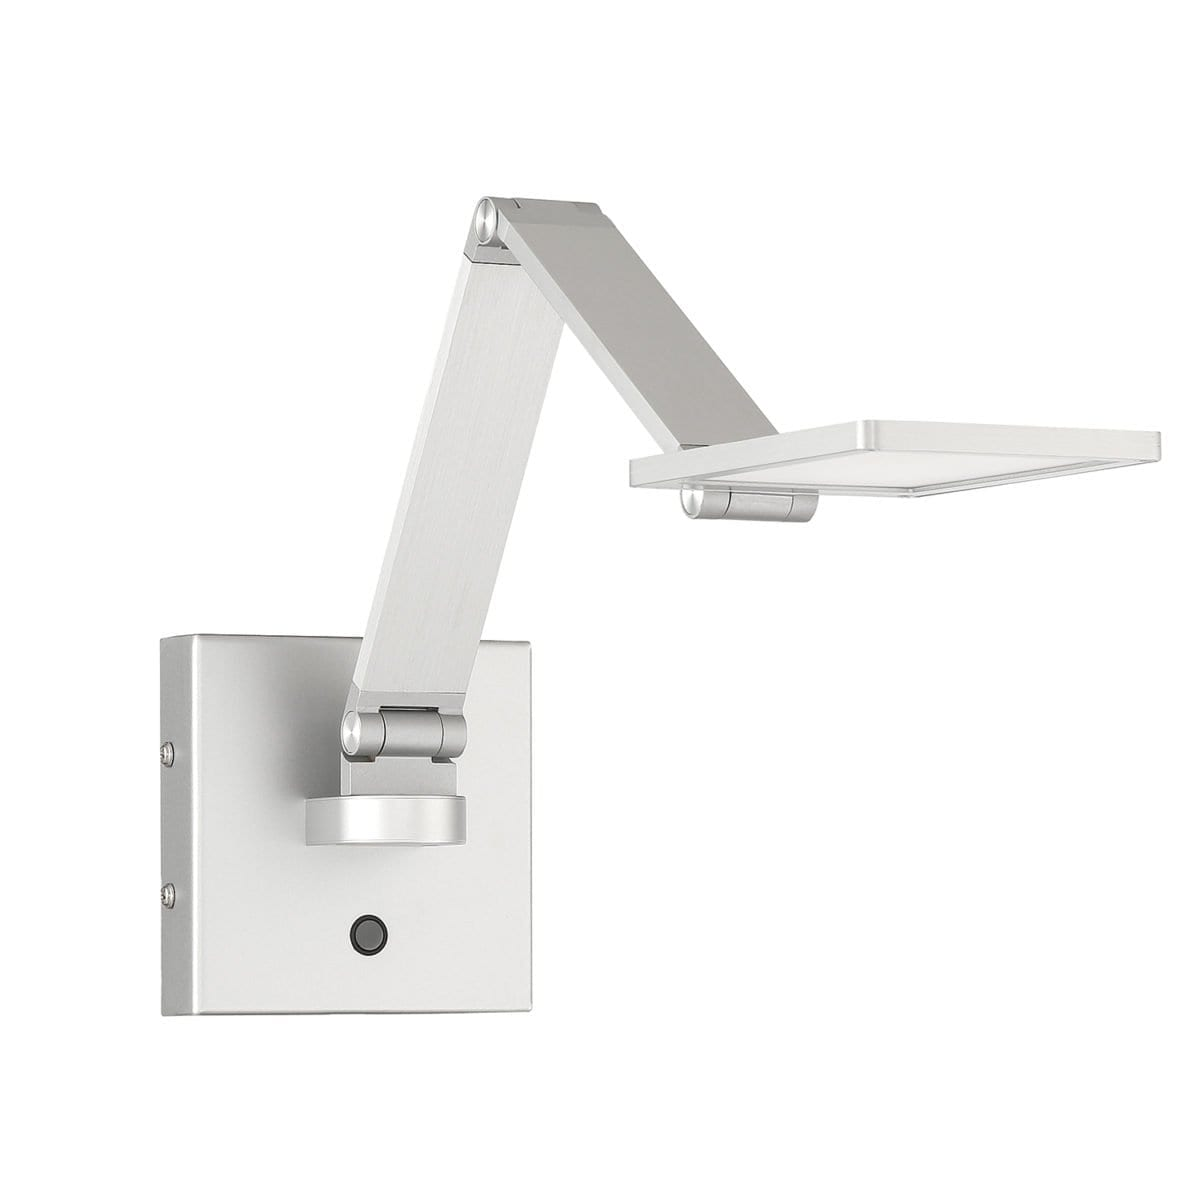 148 SA100 AL LED Wall Swing Arm Available in Aluminum or Black Regular Price $381.99 Sale Price $267.99